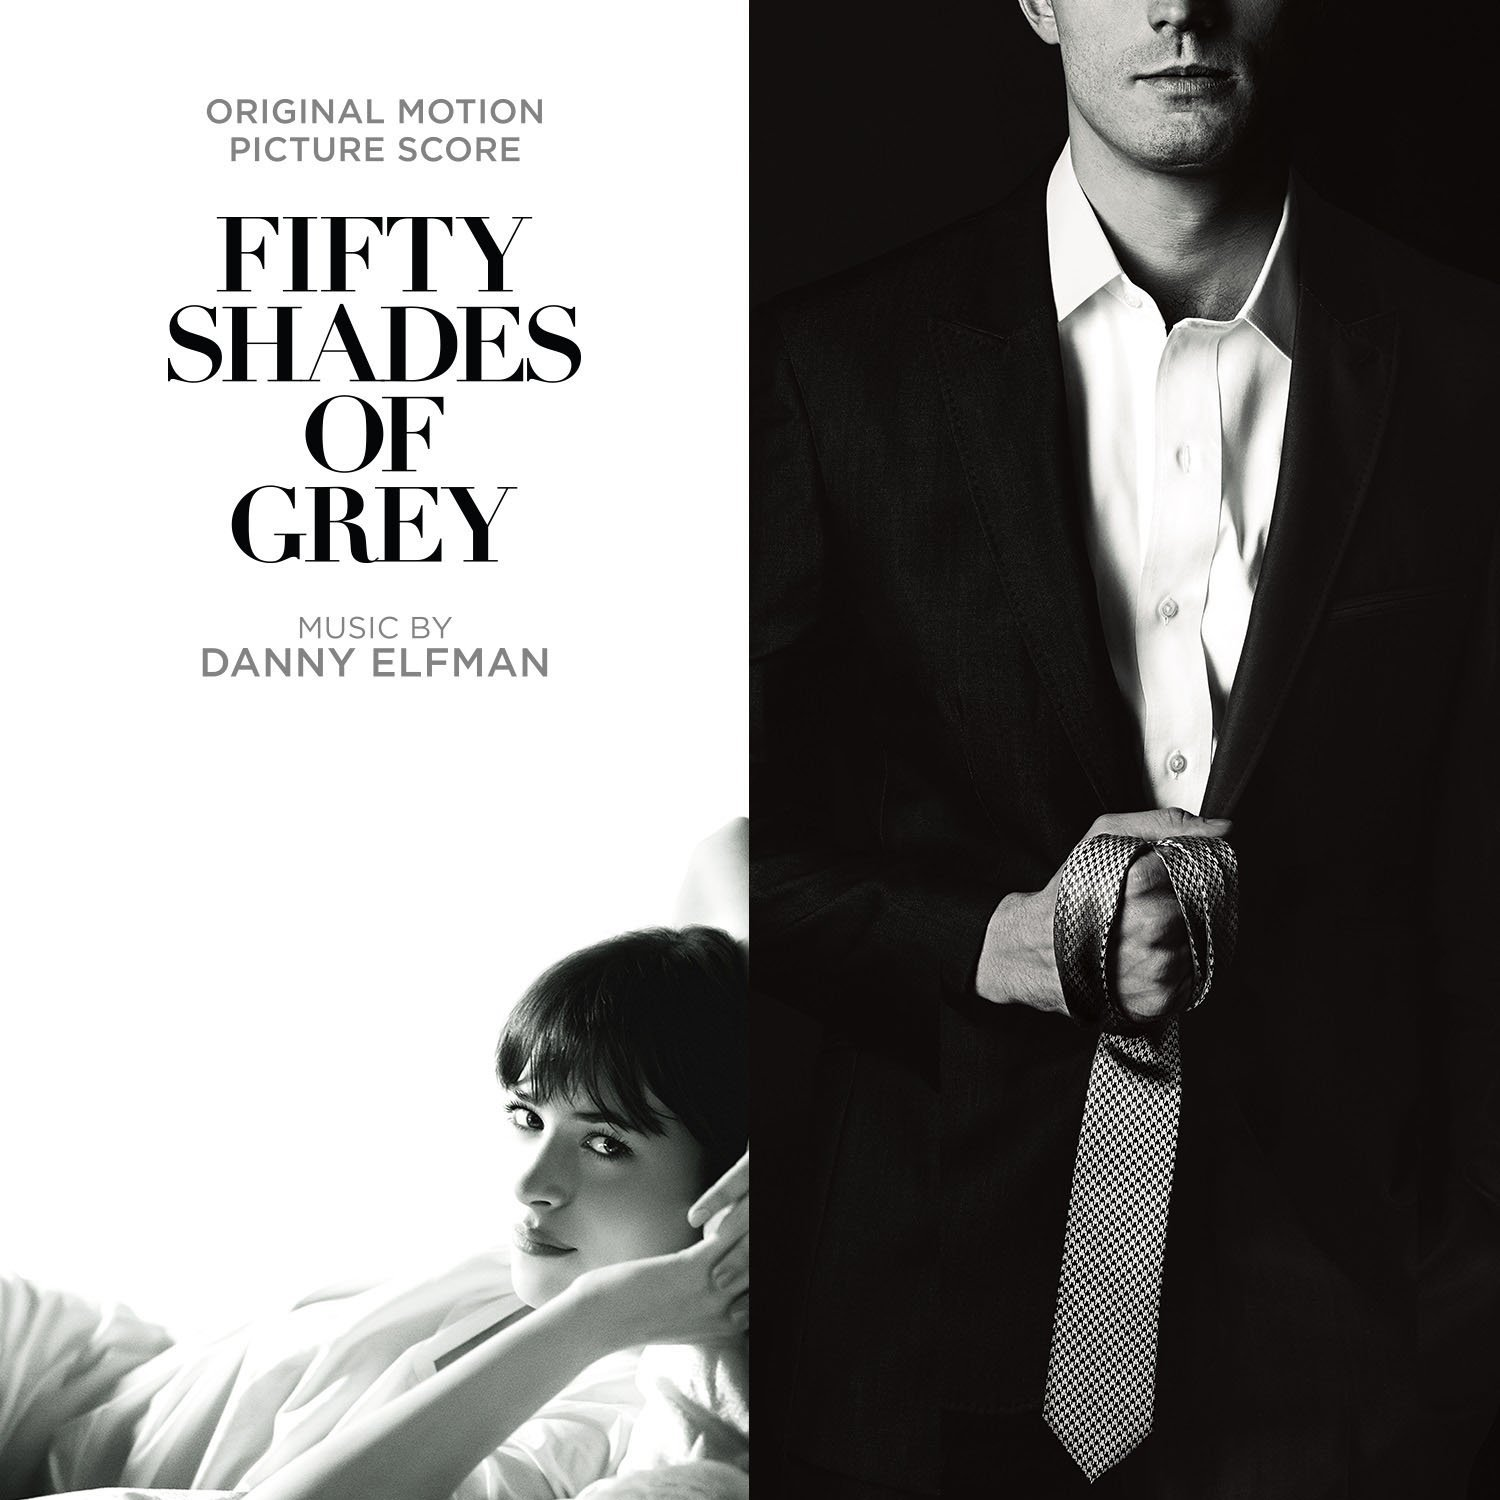 Fifty shades of grey detalles del lbum asturscore for Fifty shades od gray